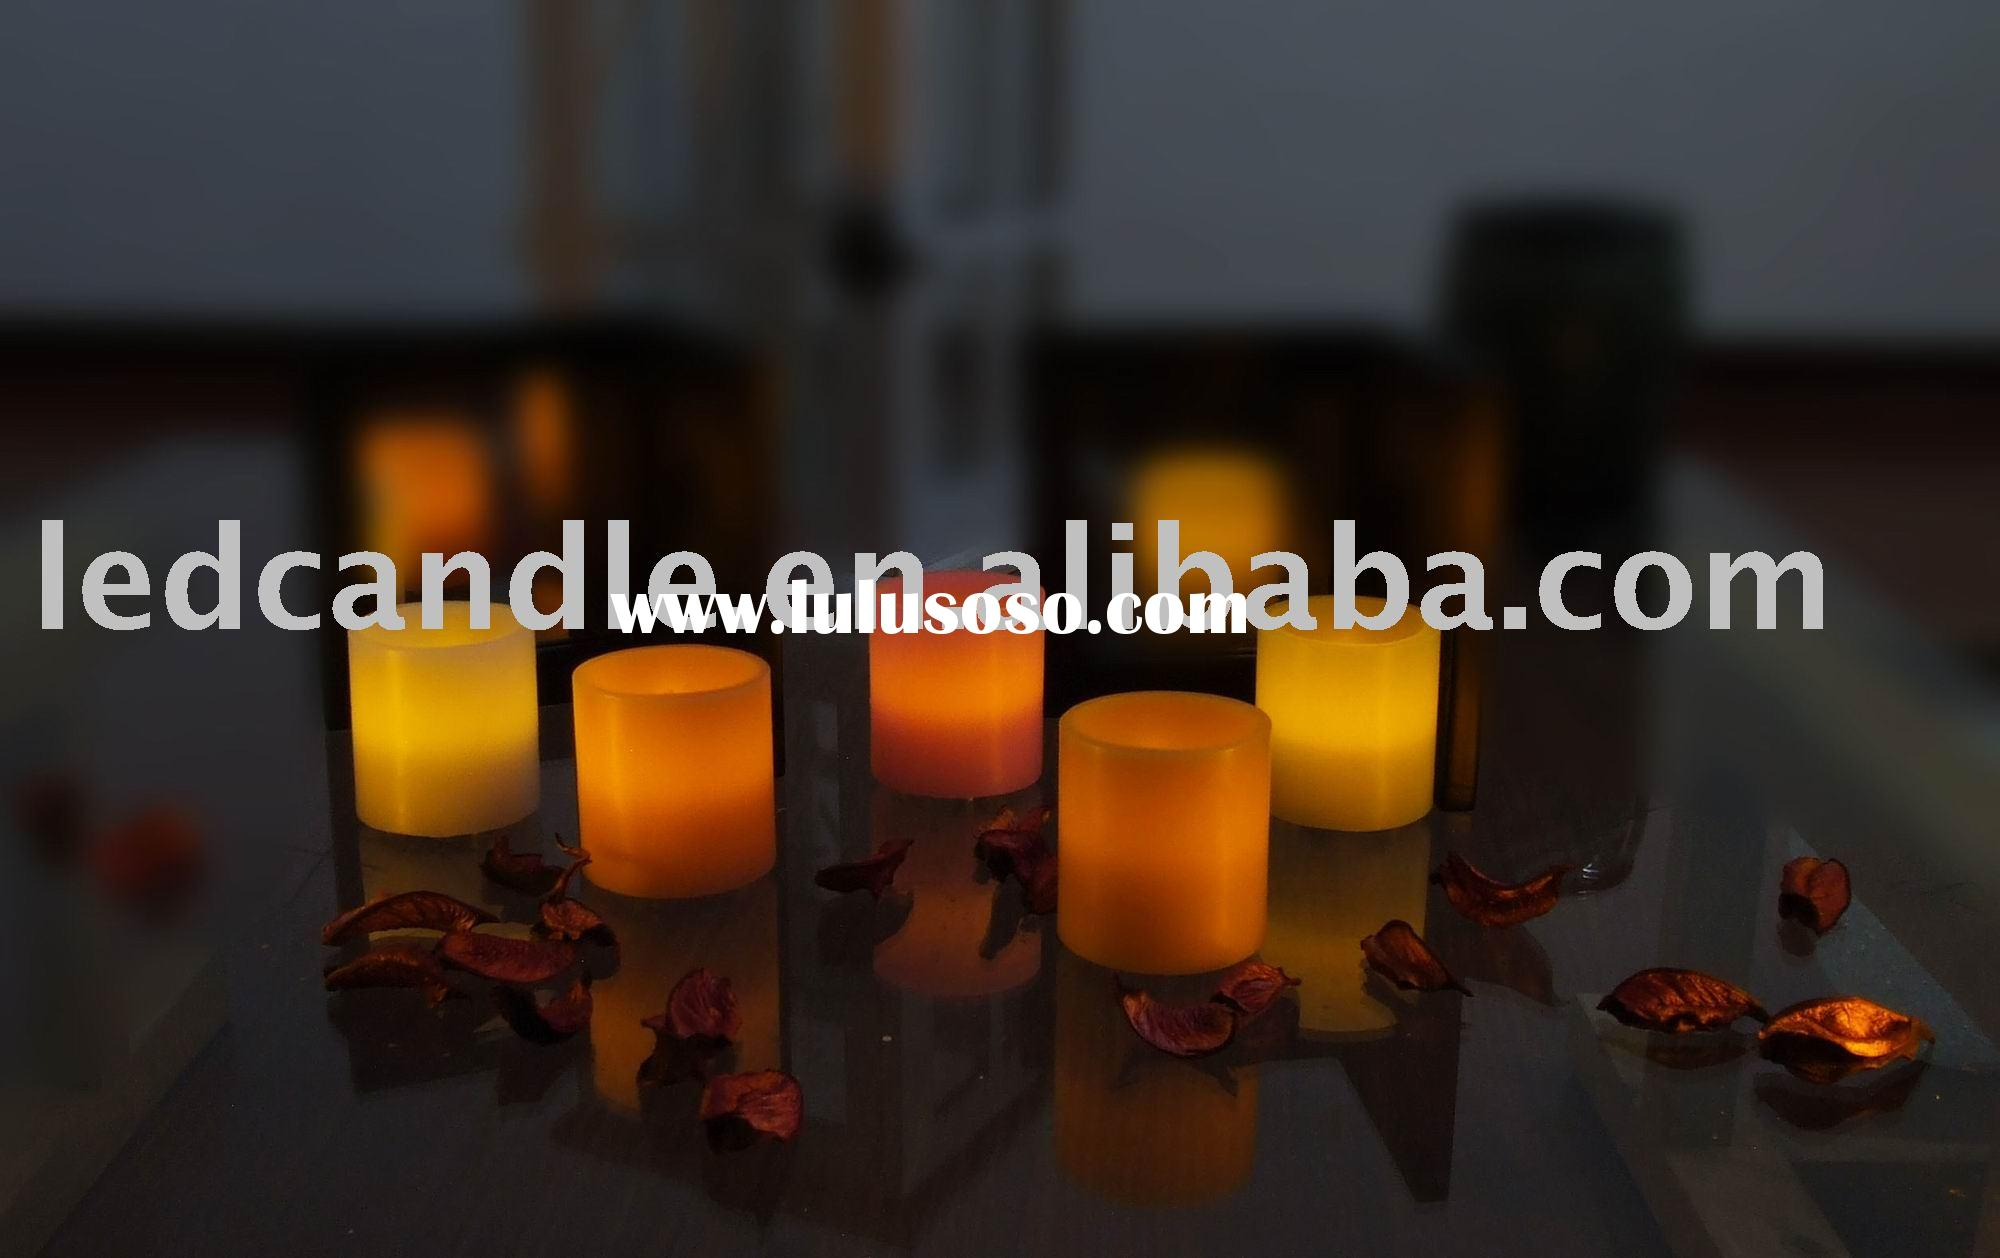 Rechargeable candles, led candles